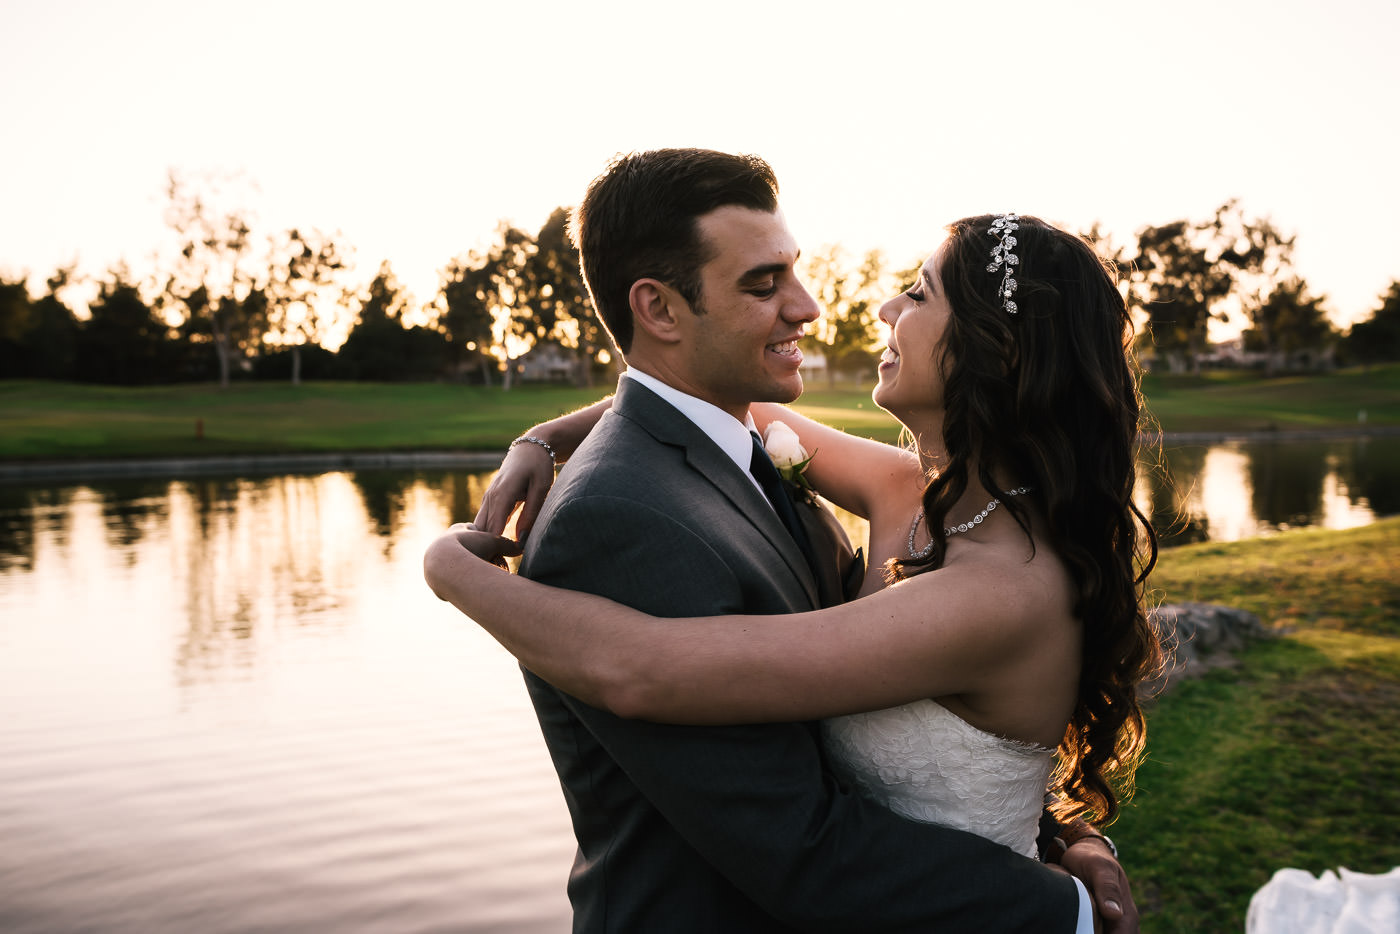 Couple holds each other close as the sun sets on the pond behind them.